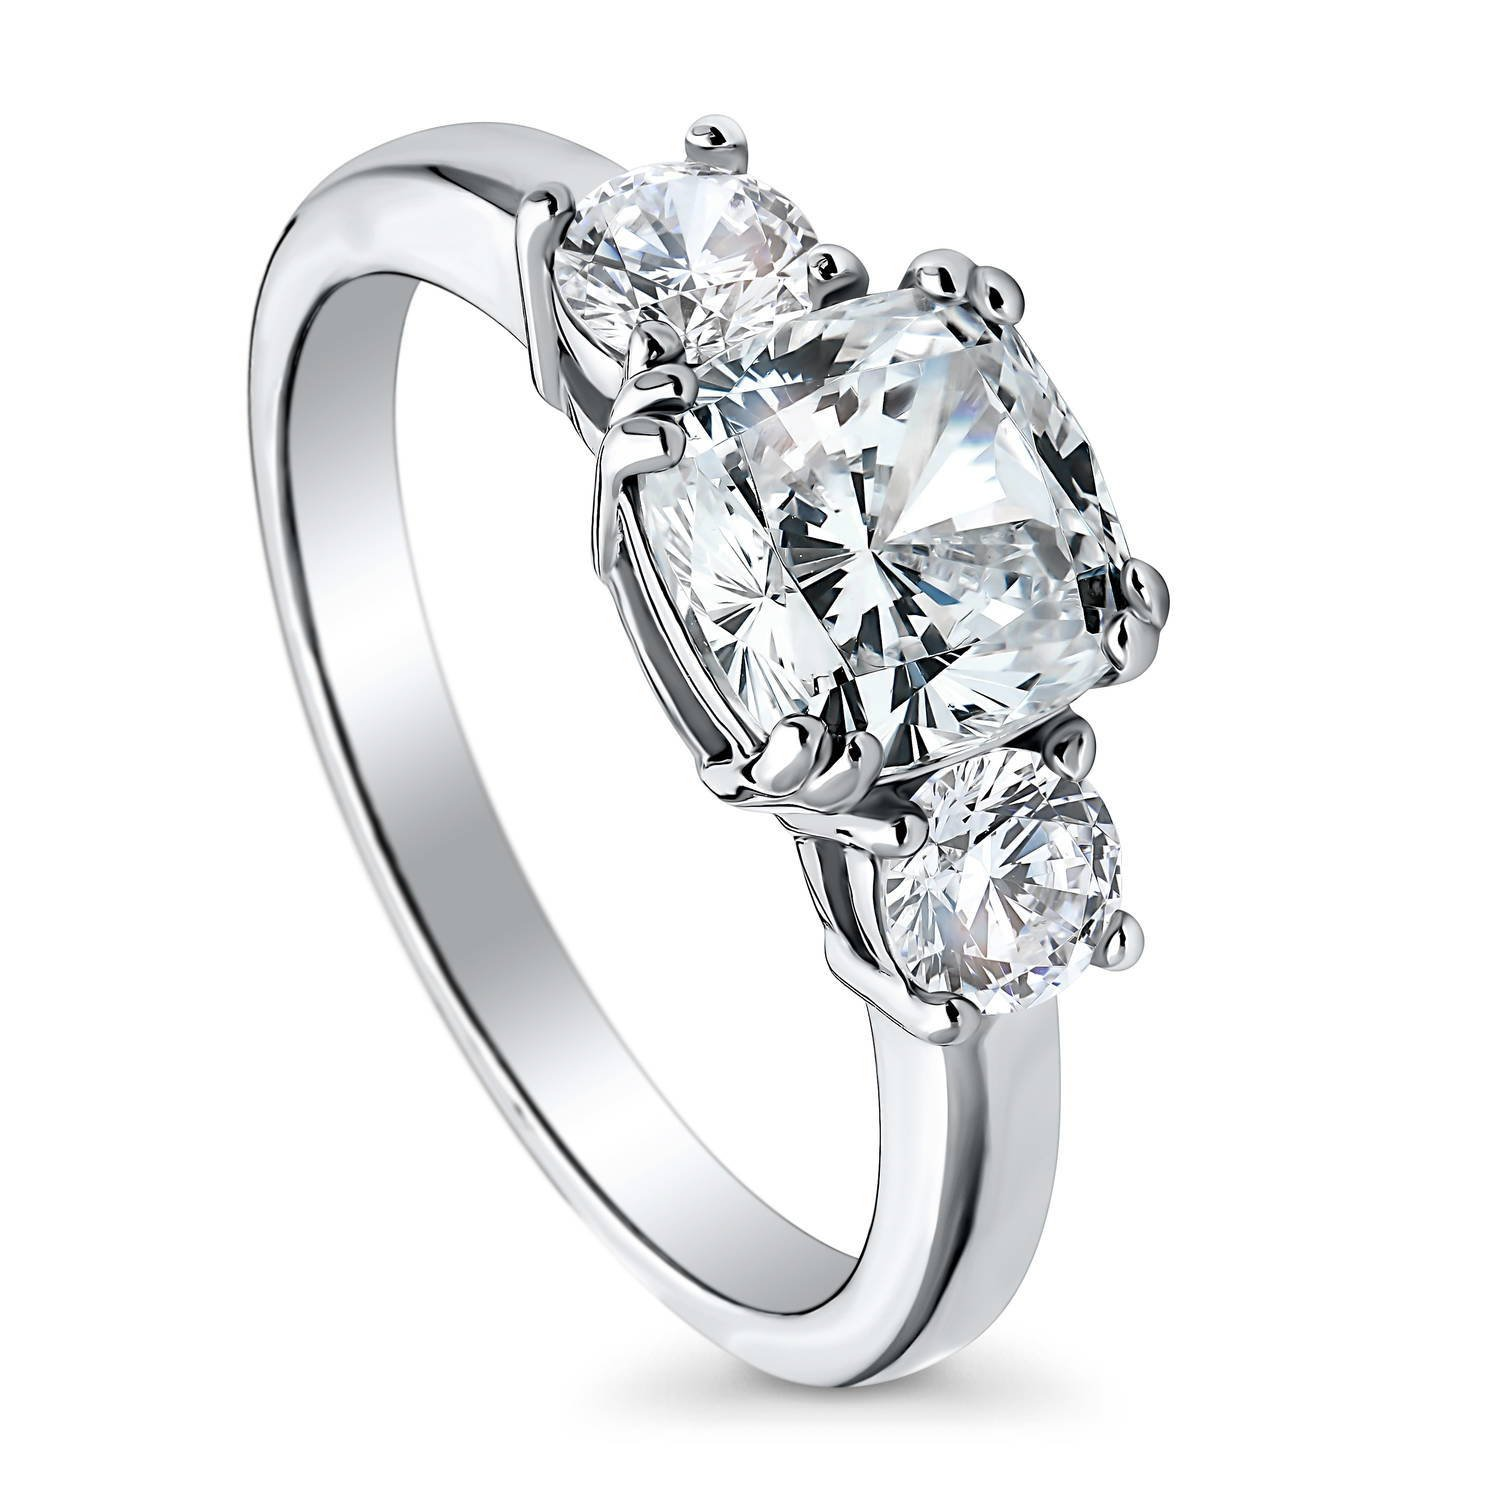 BERRICLE Rhodium Plated Silver Cushion Cut Cubic Zirconia CZ 3-Stone Promise Engagement Ring Size 8.5 by BERRICLE (Image #1)